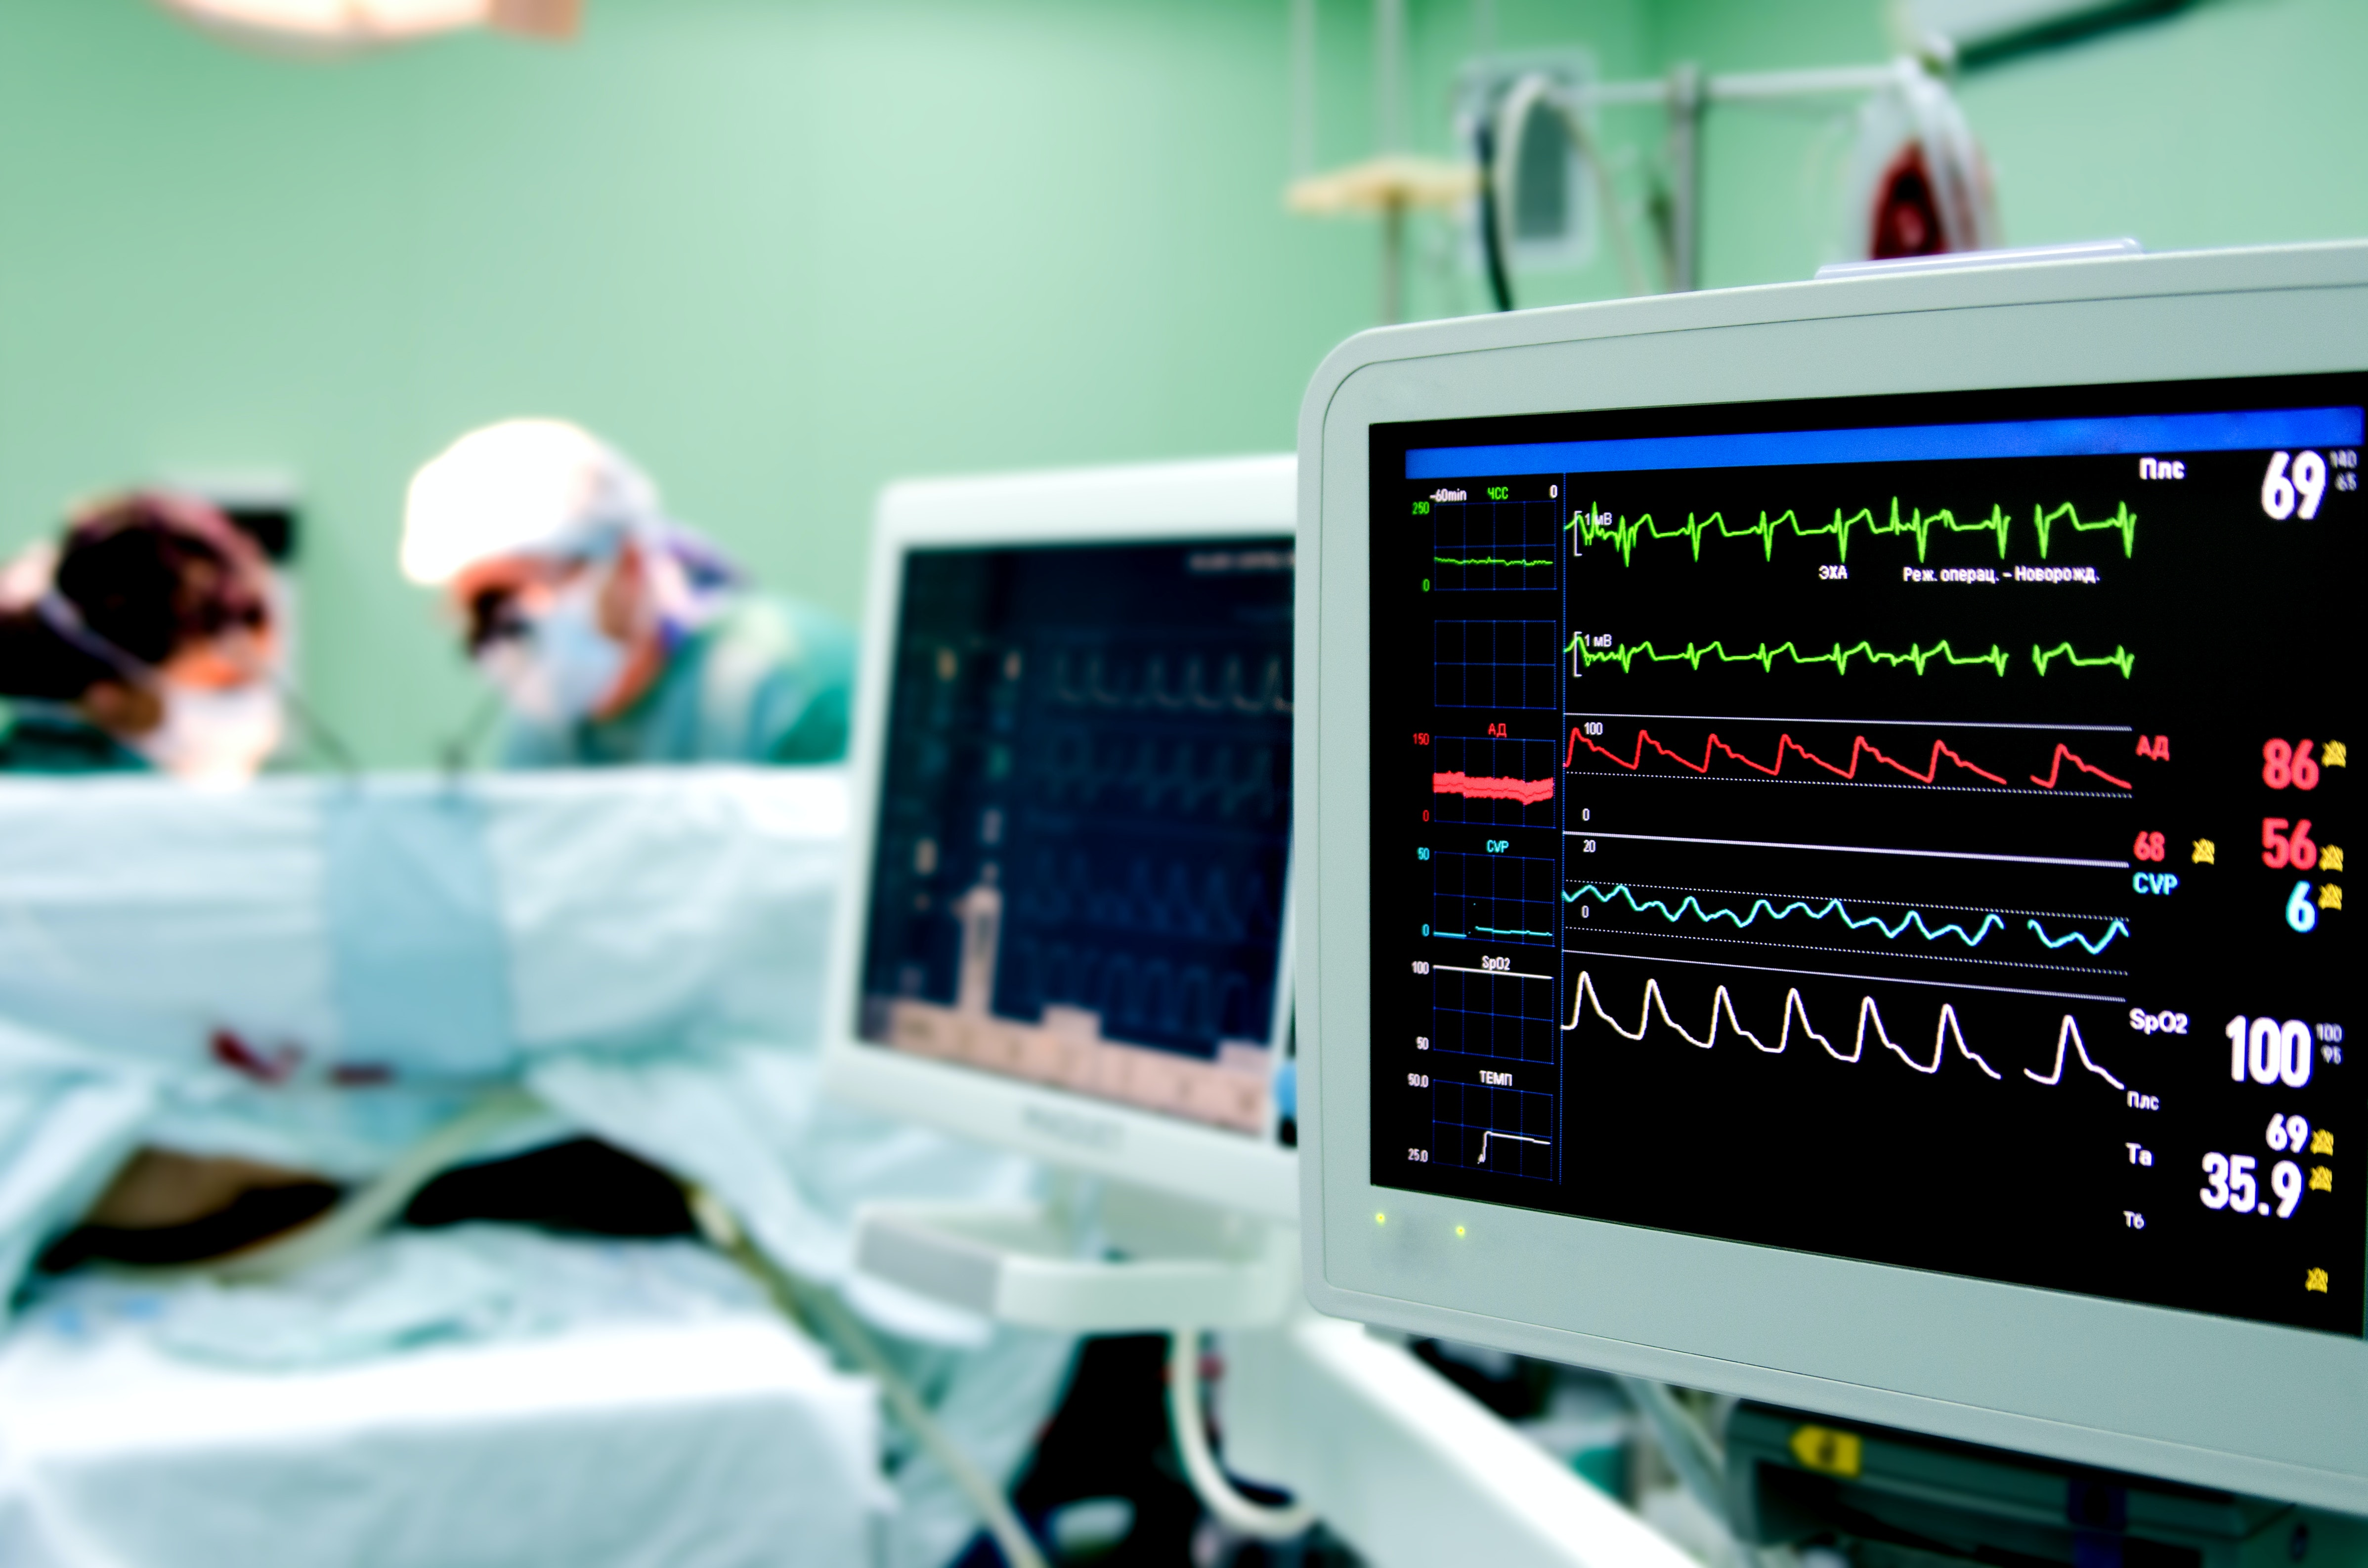 Women's heart attack symptoms are different, and clinical care must catch up